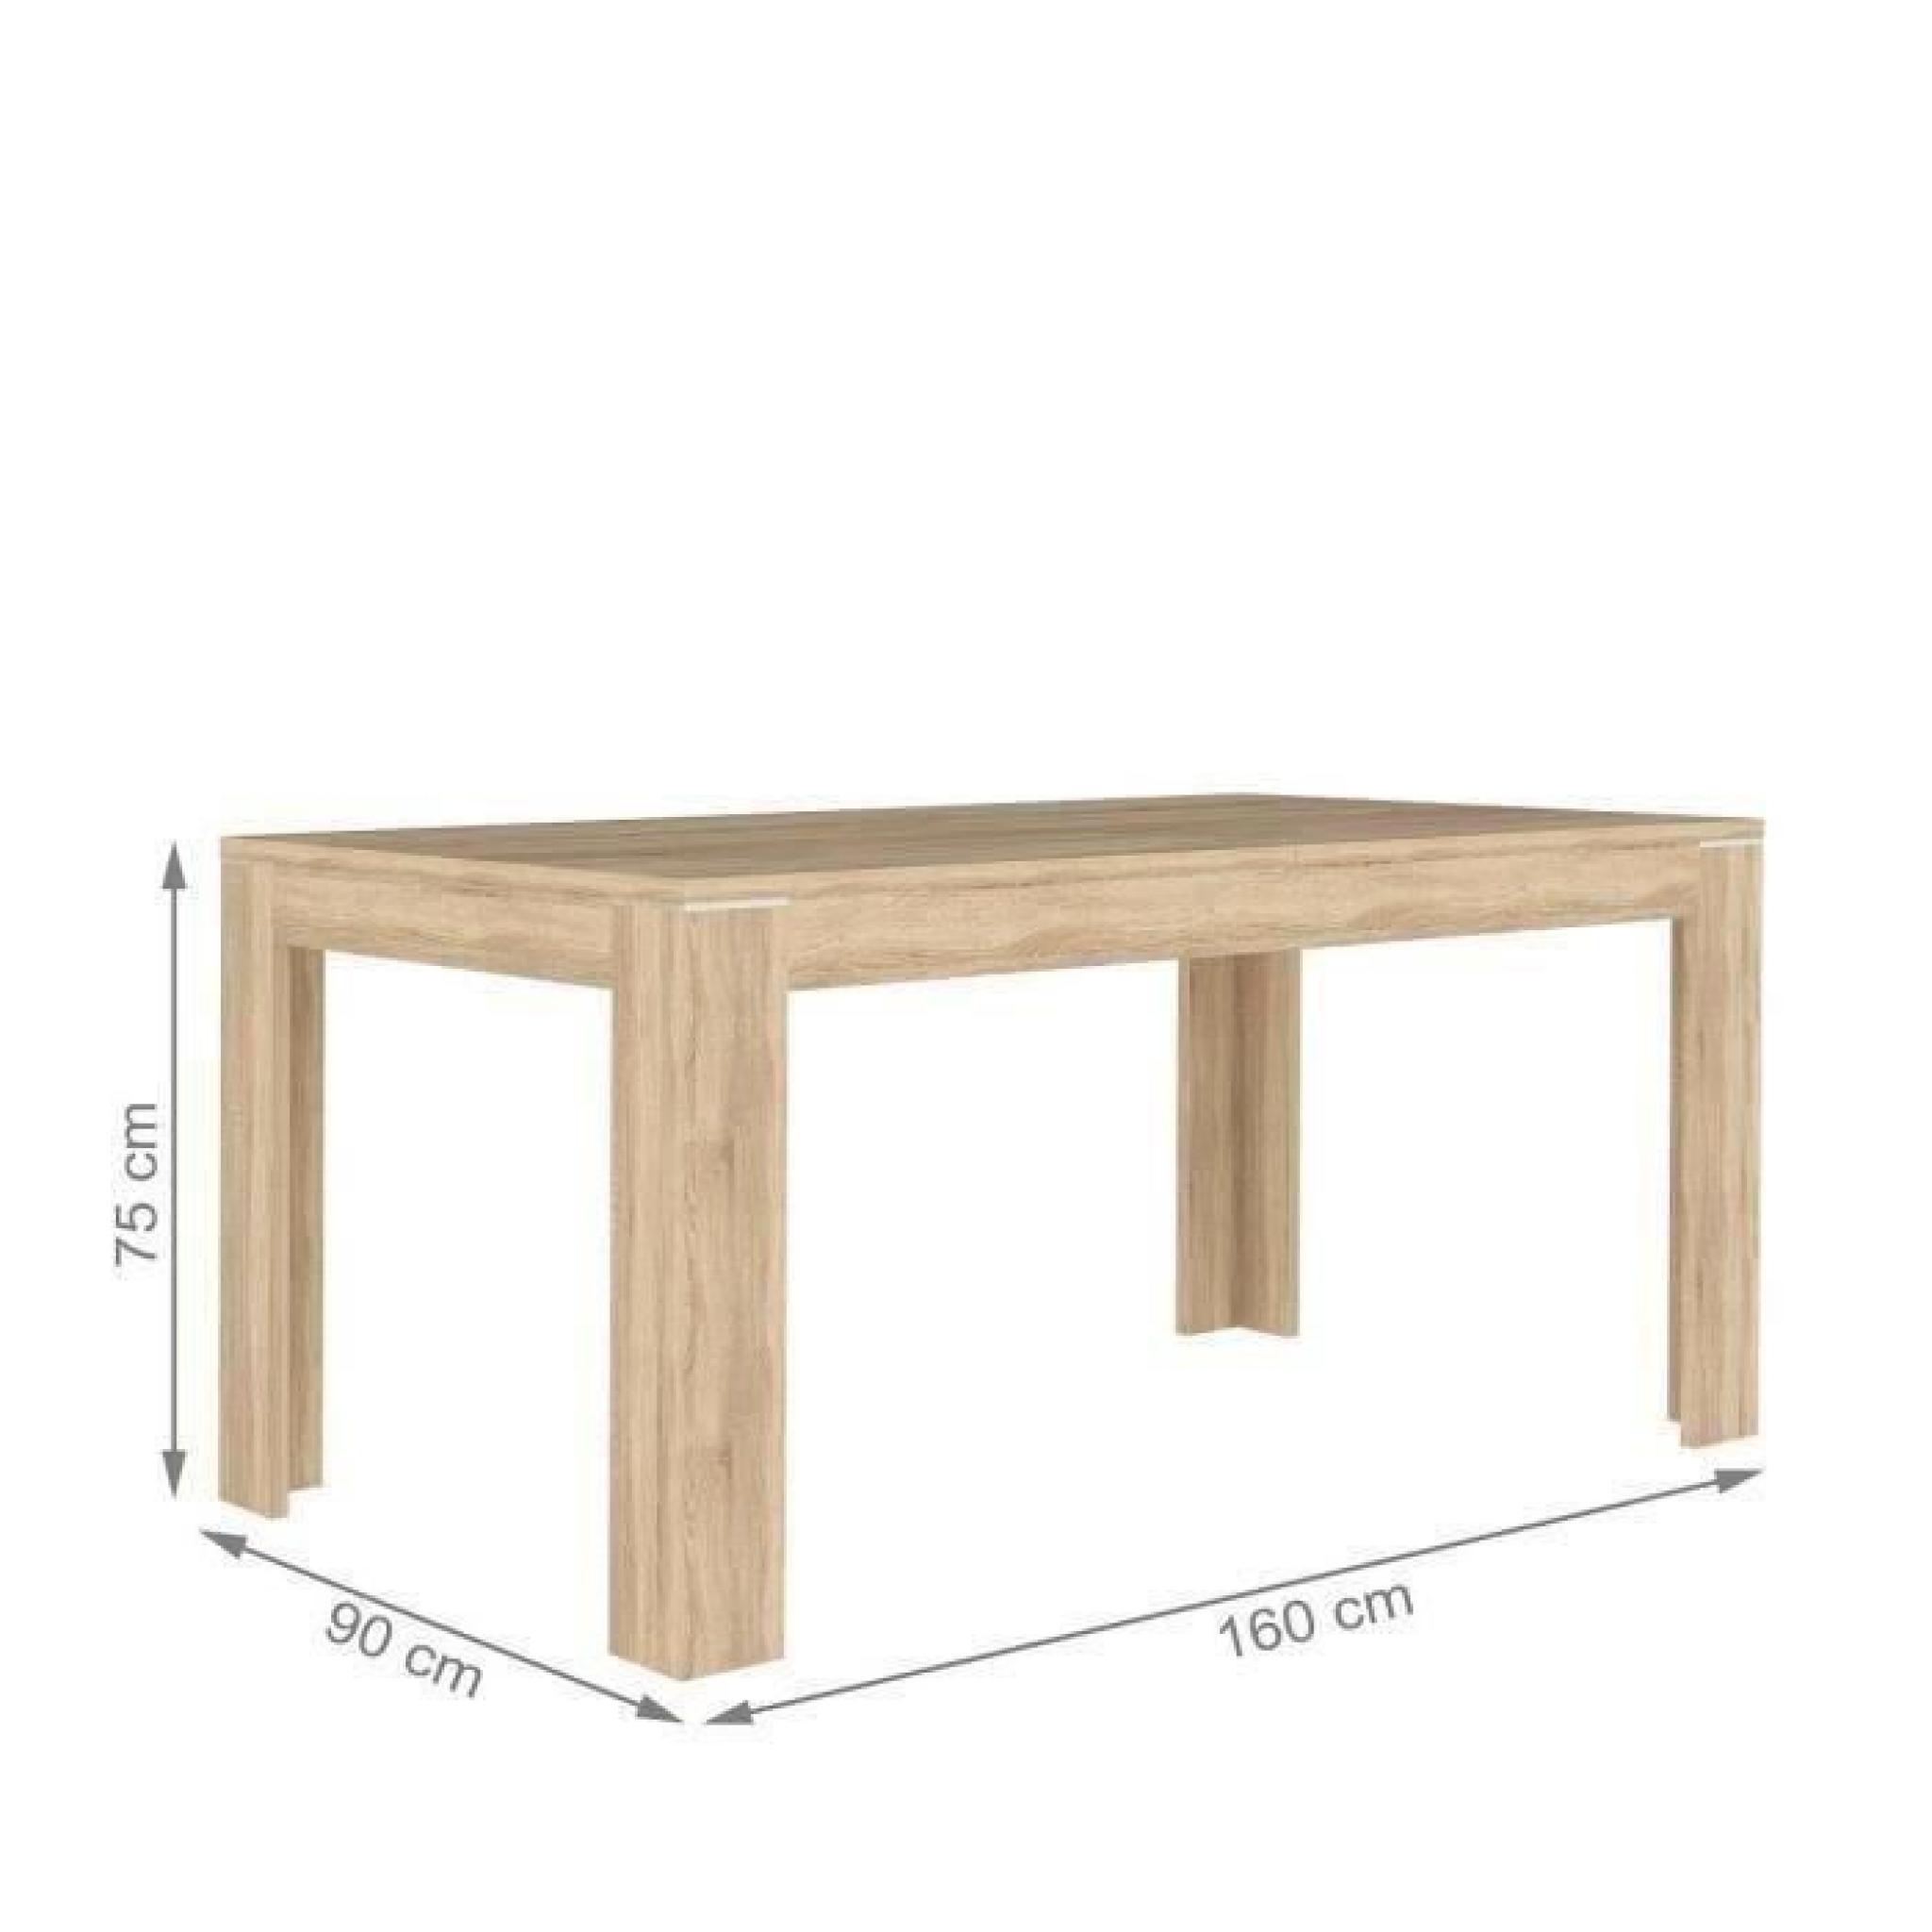 Table salle a manger extensible pas cher maison design for Table a manger extensible